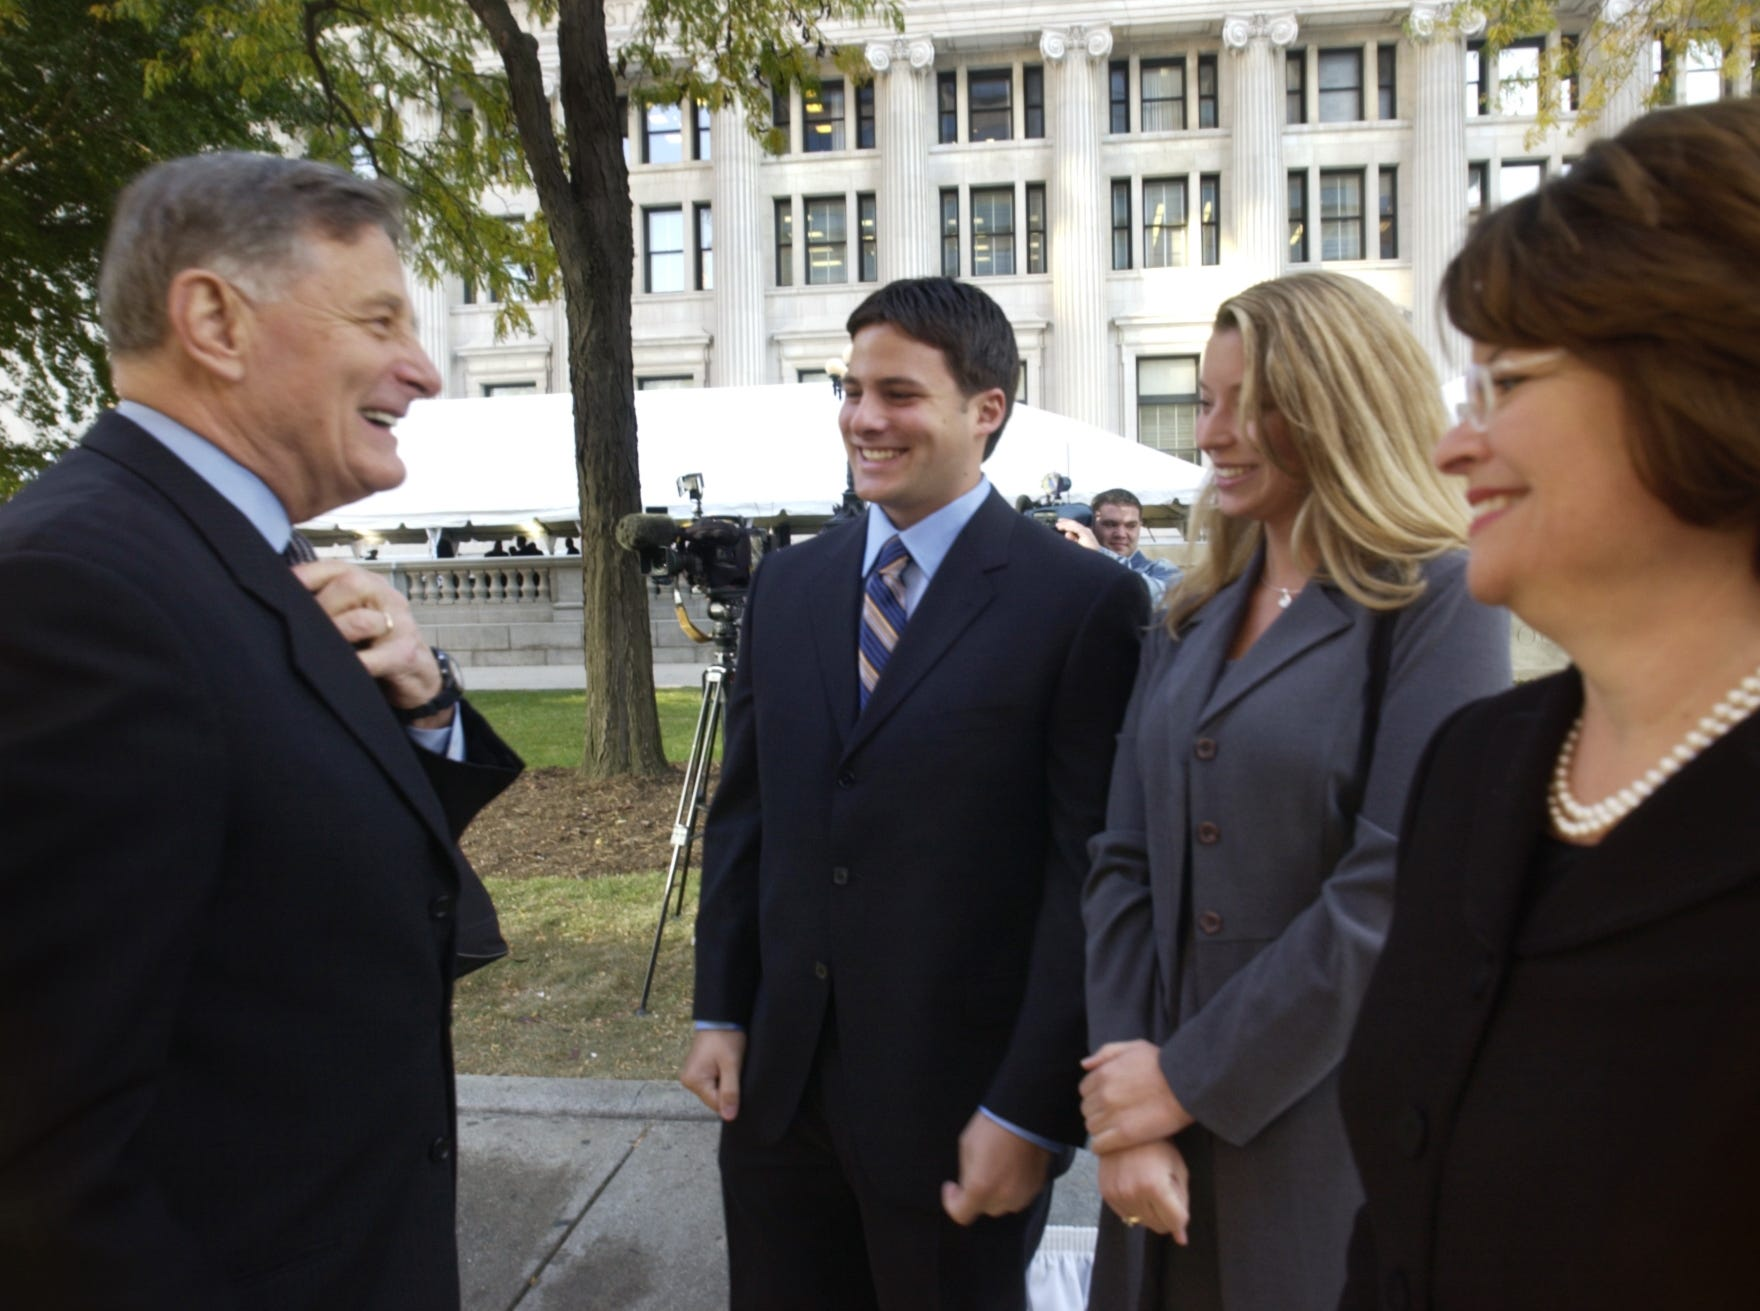 Birch Bayh attended a ceremony at the federal courthouse in 2003 in which the 100-year-old building on Ohio Street was renamed as Birch Bayh Federal Building and United States Courthouse.  IN THIS PHOTO:  Birch Bayh (left) talks with his wife Kitty Bayh (right), their son Chris Bayh (second from left) and Chris' friend Erin Thomas (second from right) after they arrived at the courthouse this morning before the renaming ceremony.